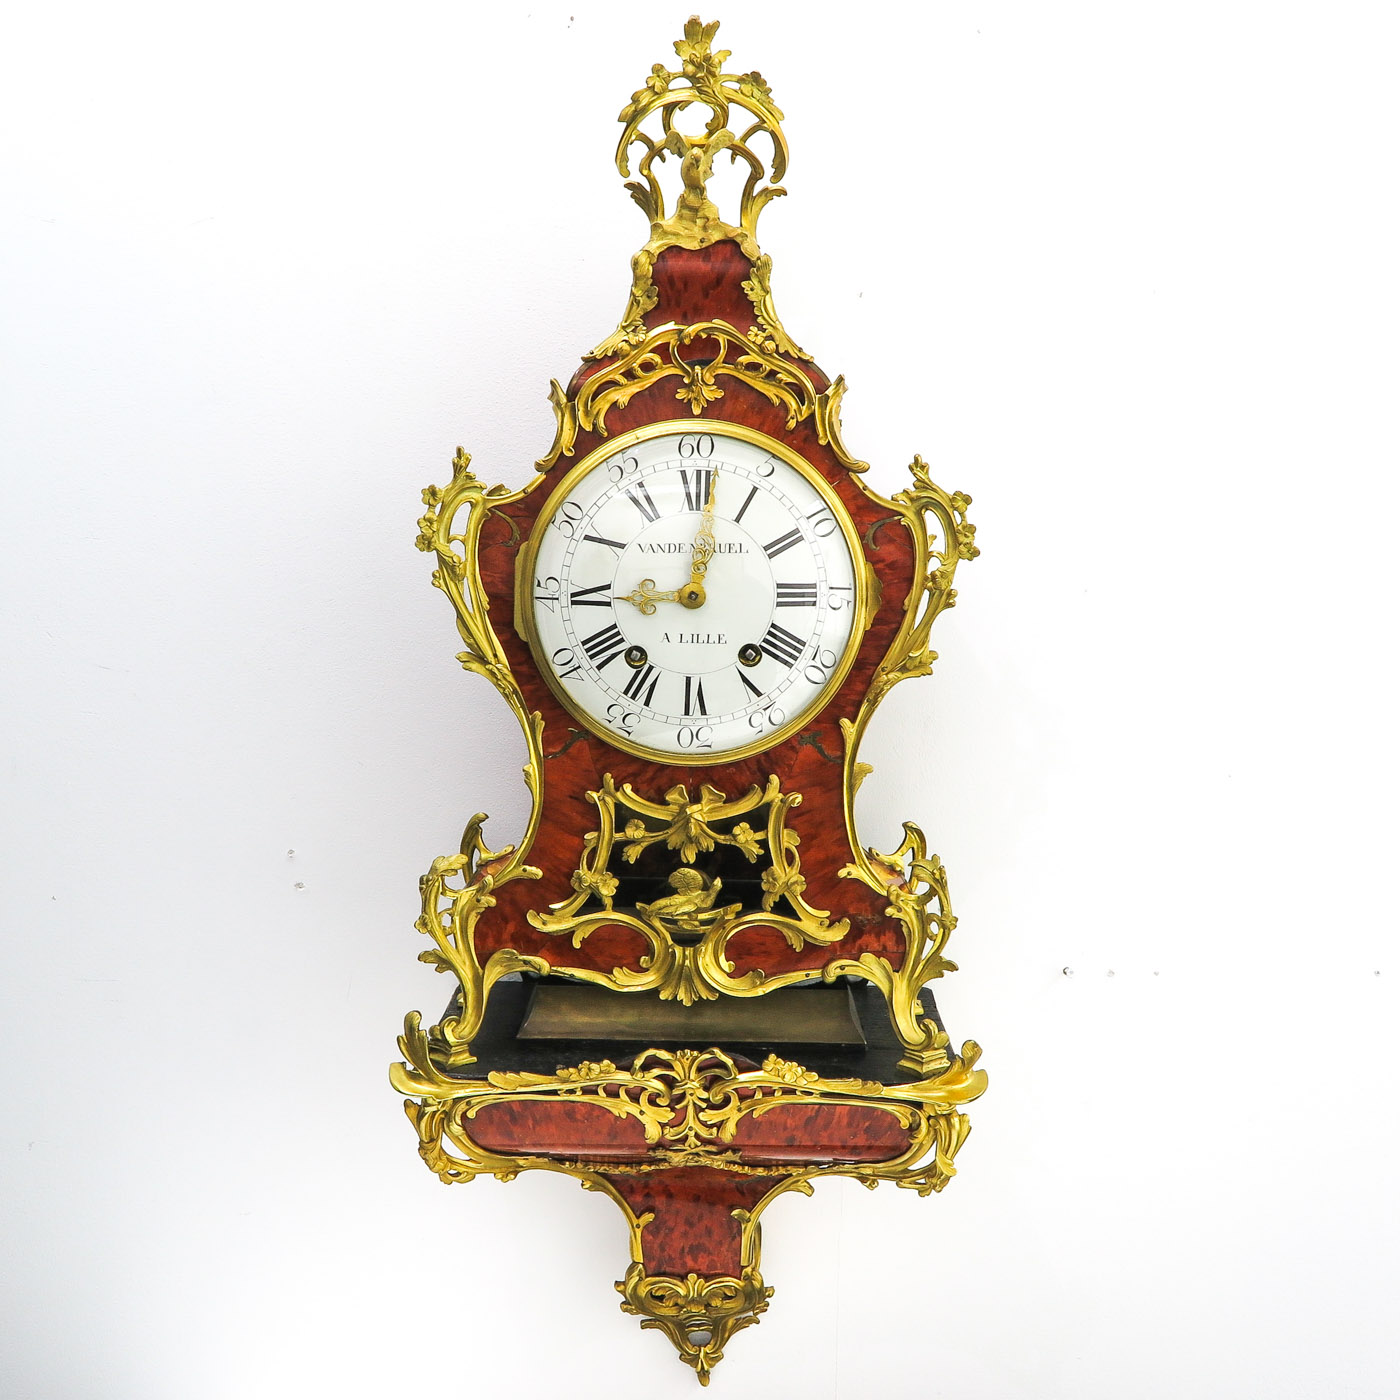 Lot 1040 - A Signed Console Clock